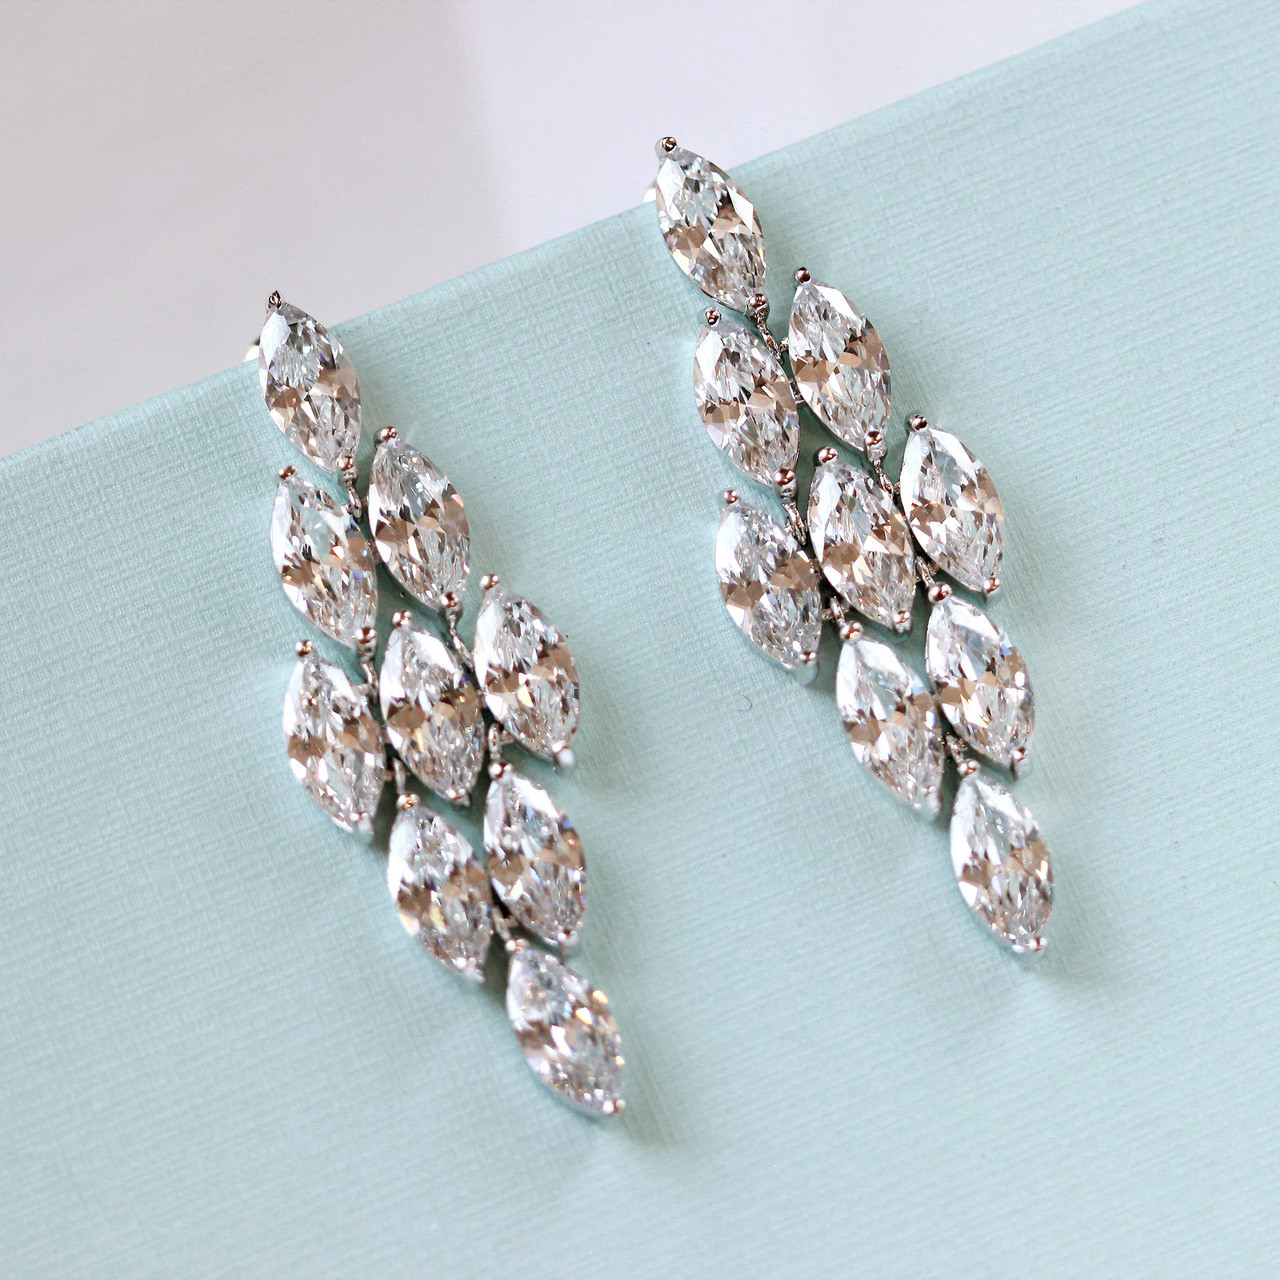 03e8fe534ceaff Zelma Statement Crystal Earrings | Bridal Jewellery by Lily Luna ...